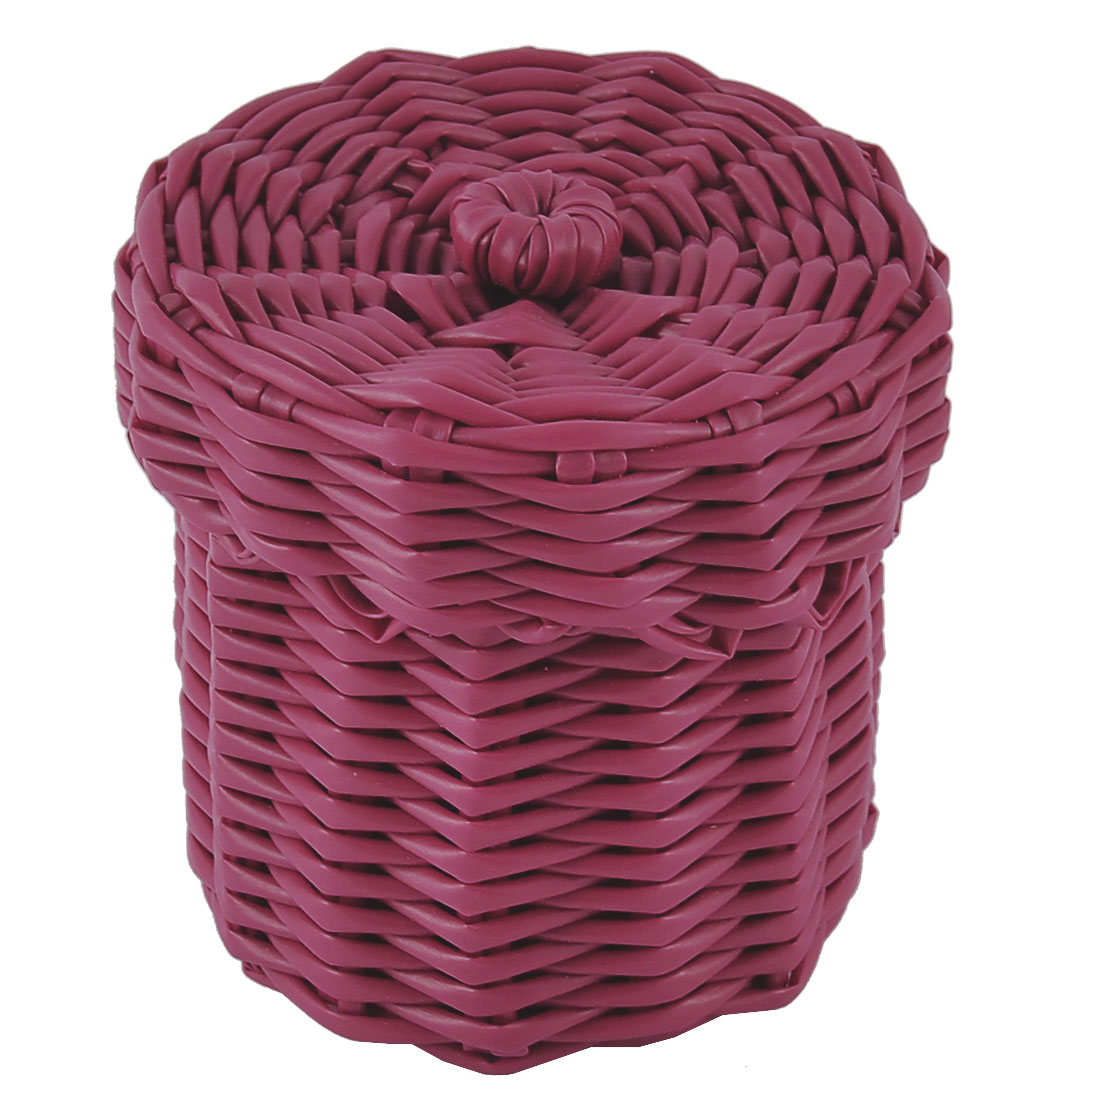 Home Office Plastic Knit Gathering Settle Storage Box Case Basket w Lid Red